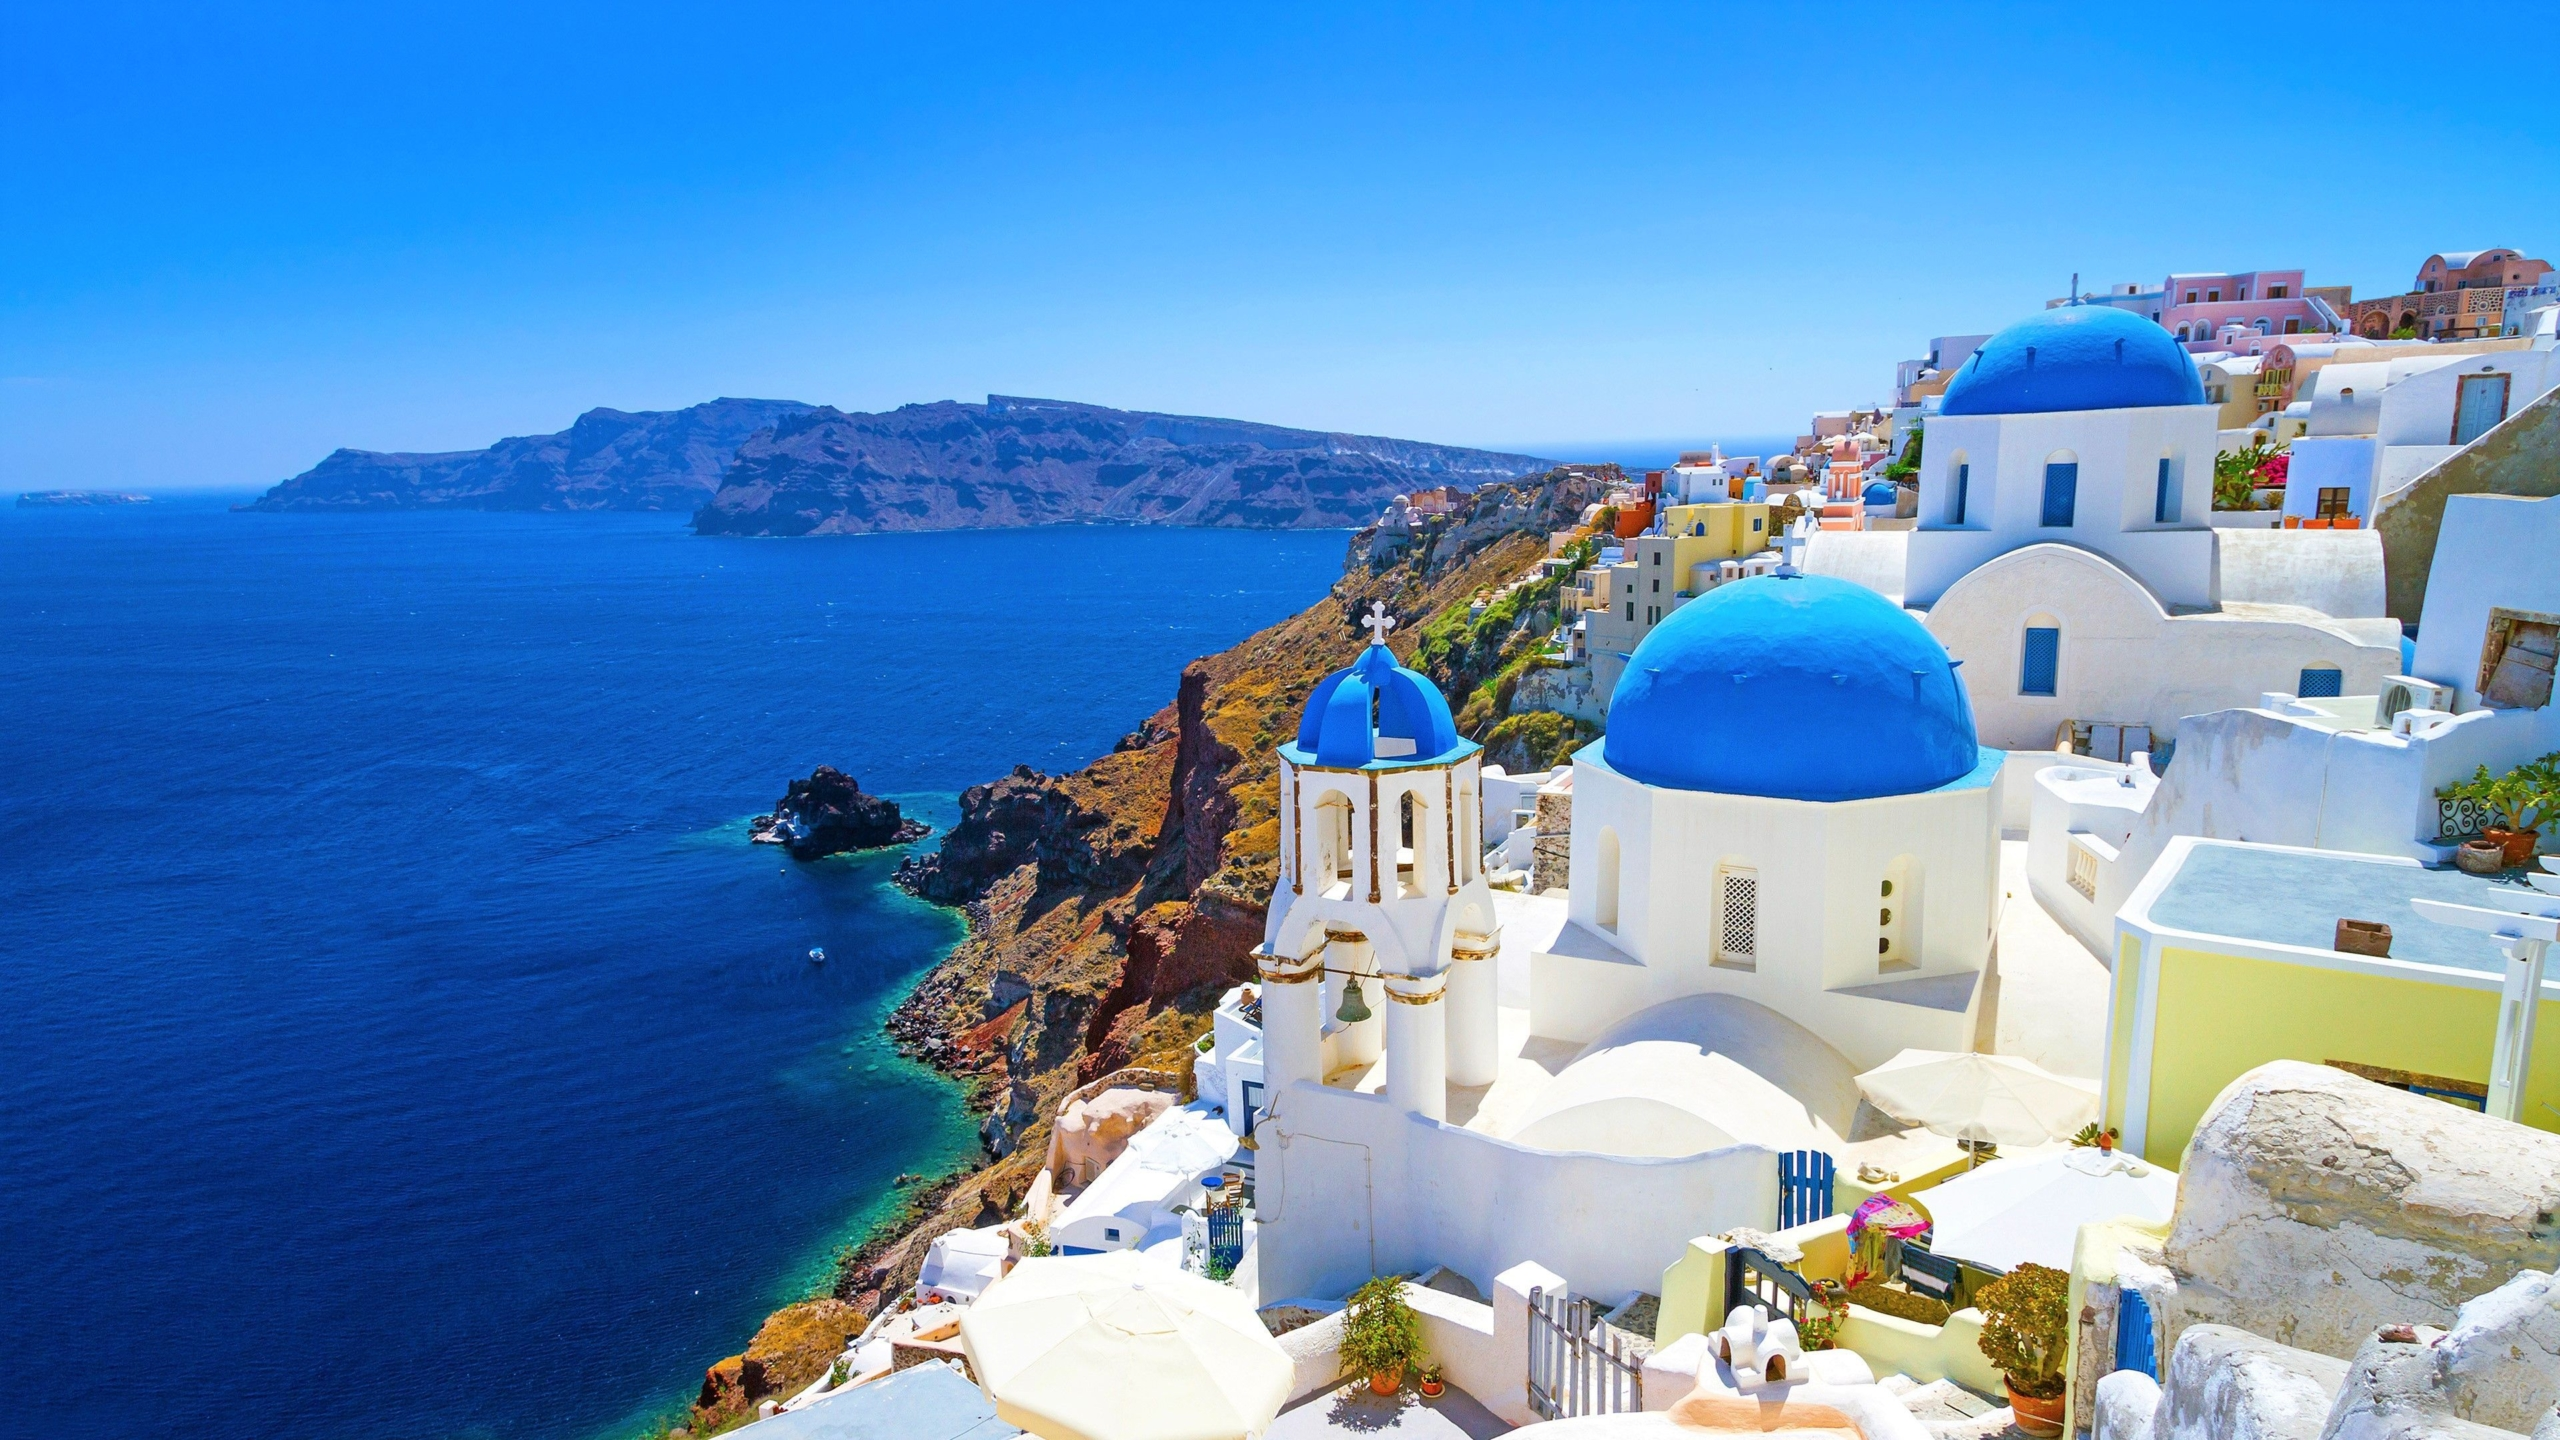 Pictures of Greece Wallpaper – 3D Graphics For Your Desktop